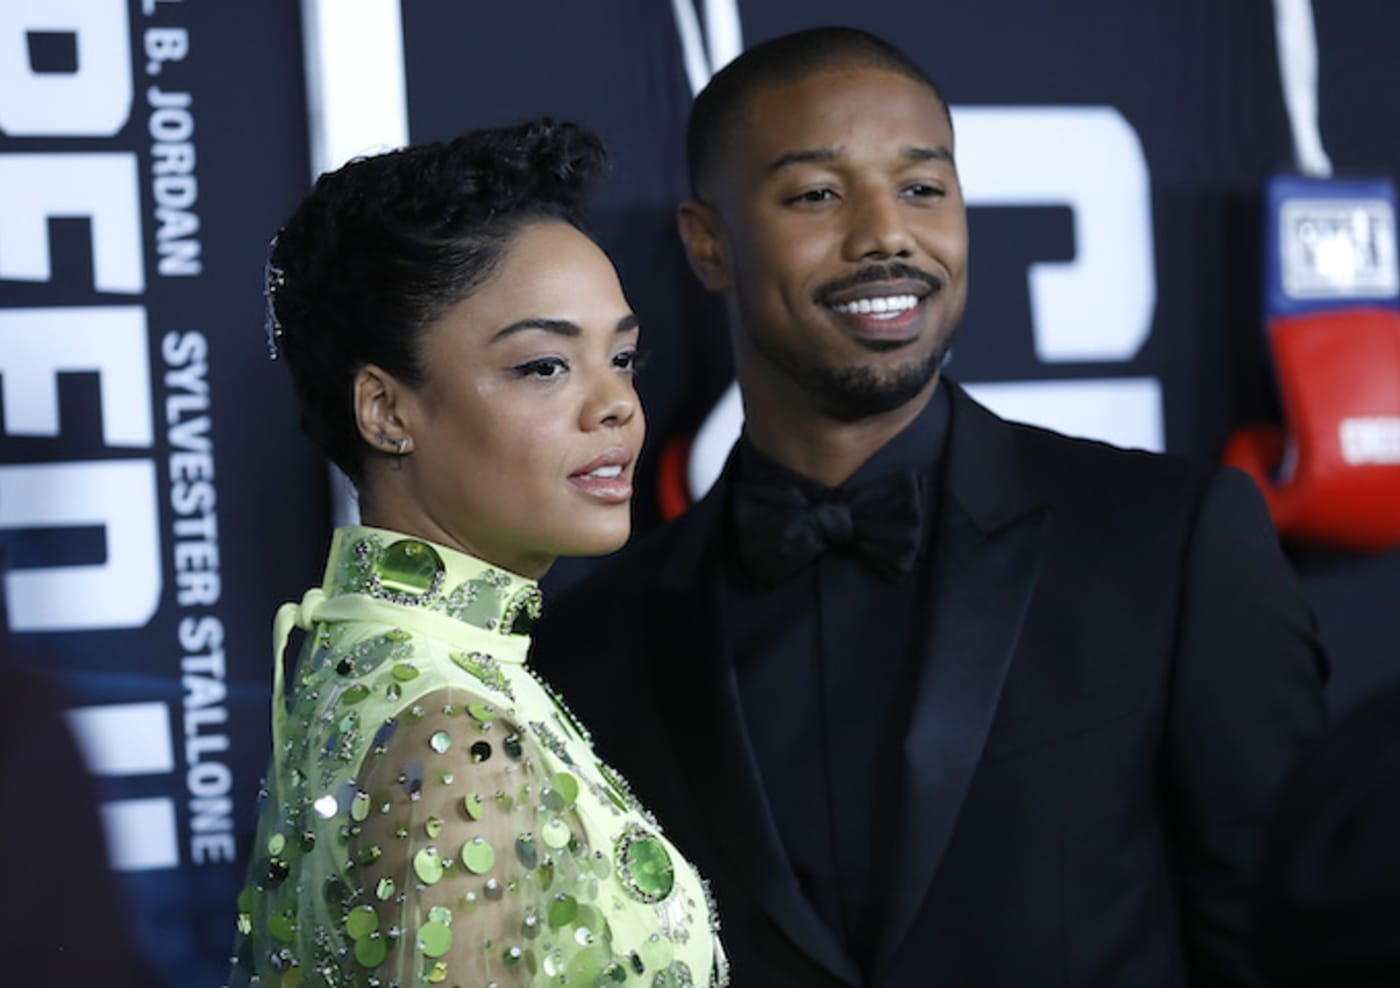 'Creed II' premiere in NYC